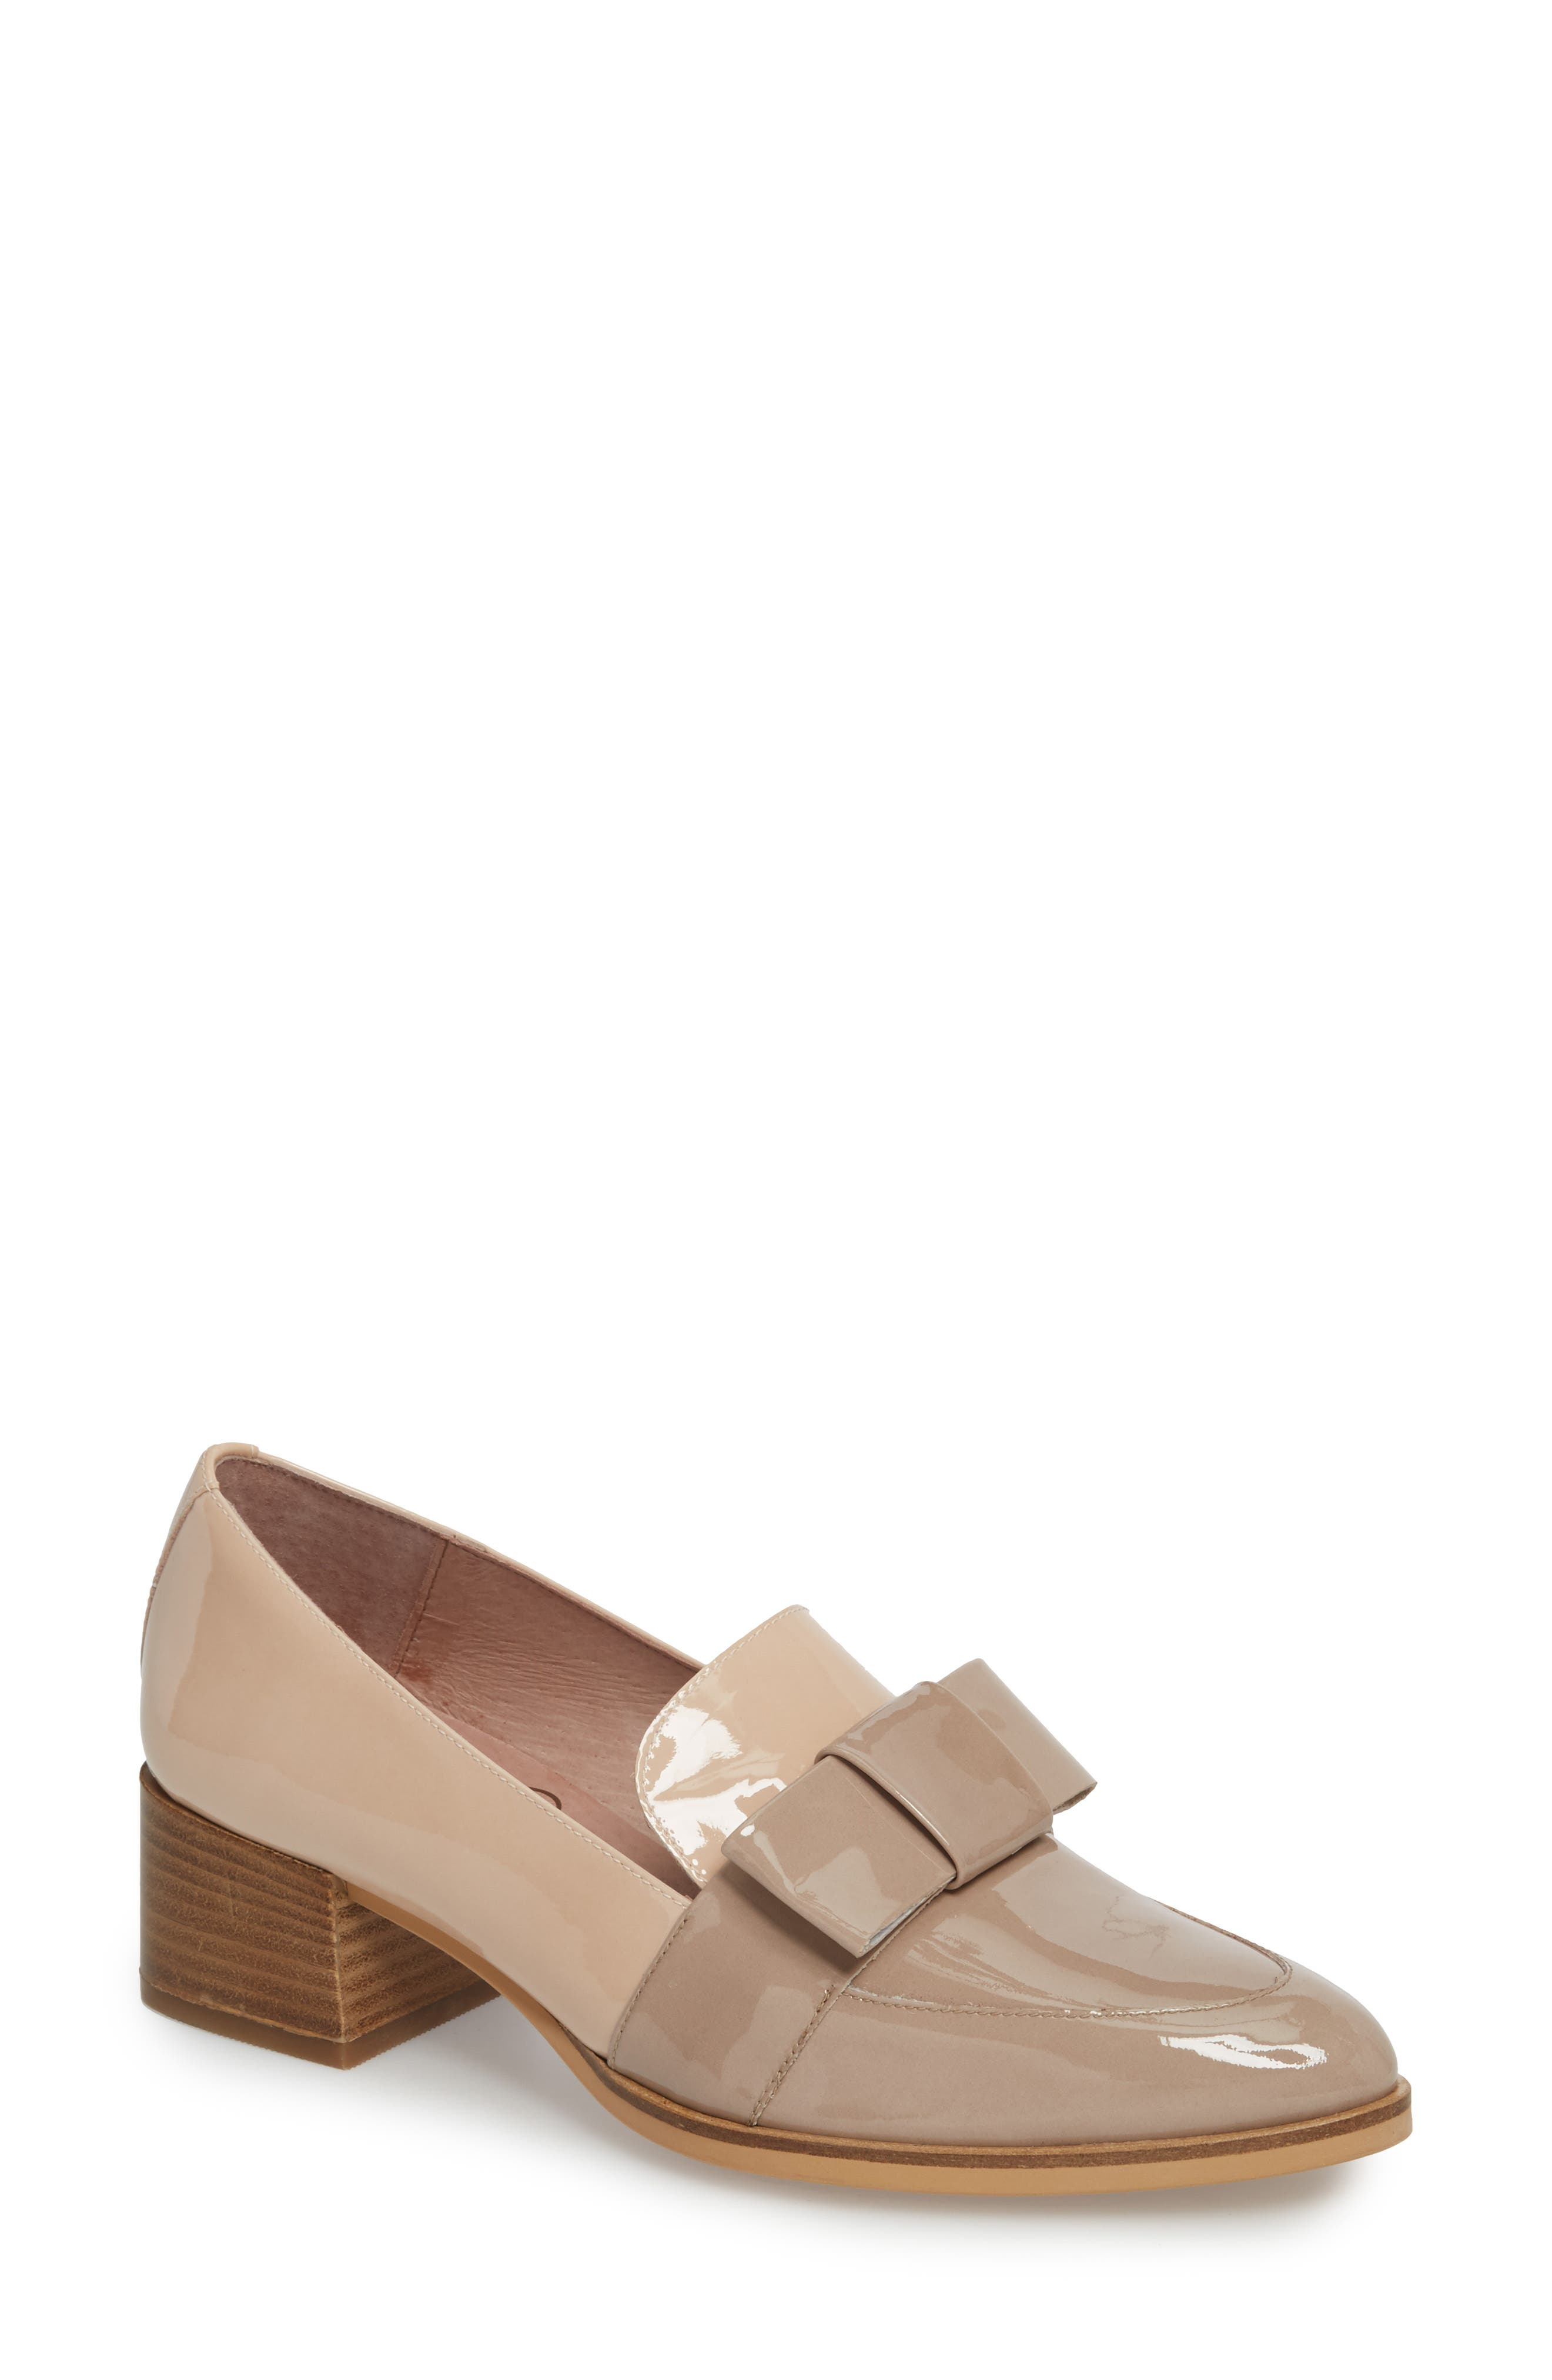 WONDERS Block Heel Loafer Pump in Taupe/ Palo Patent Leather